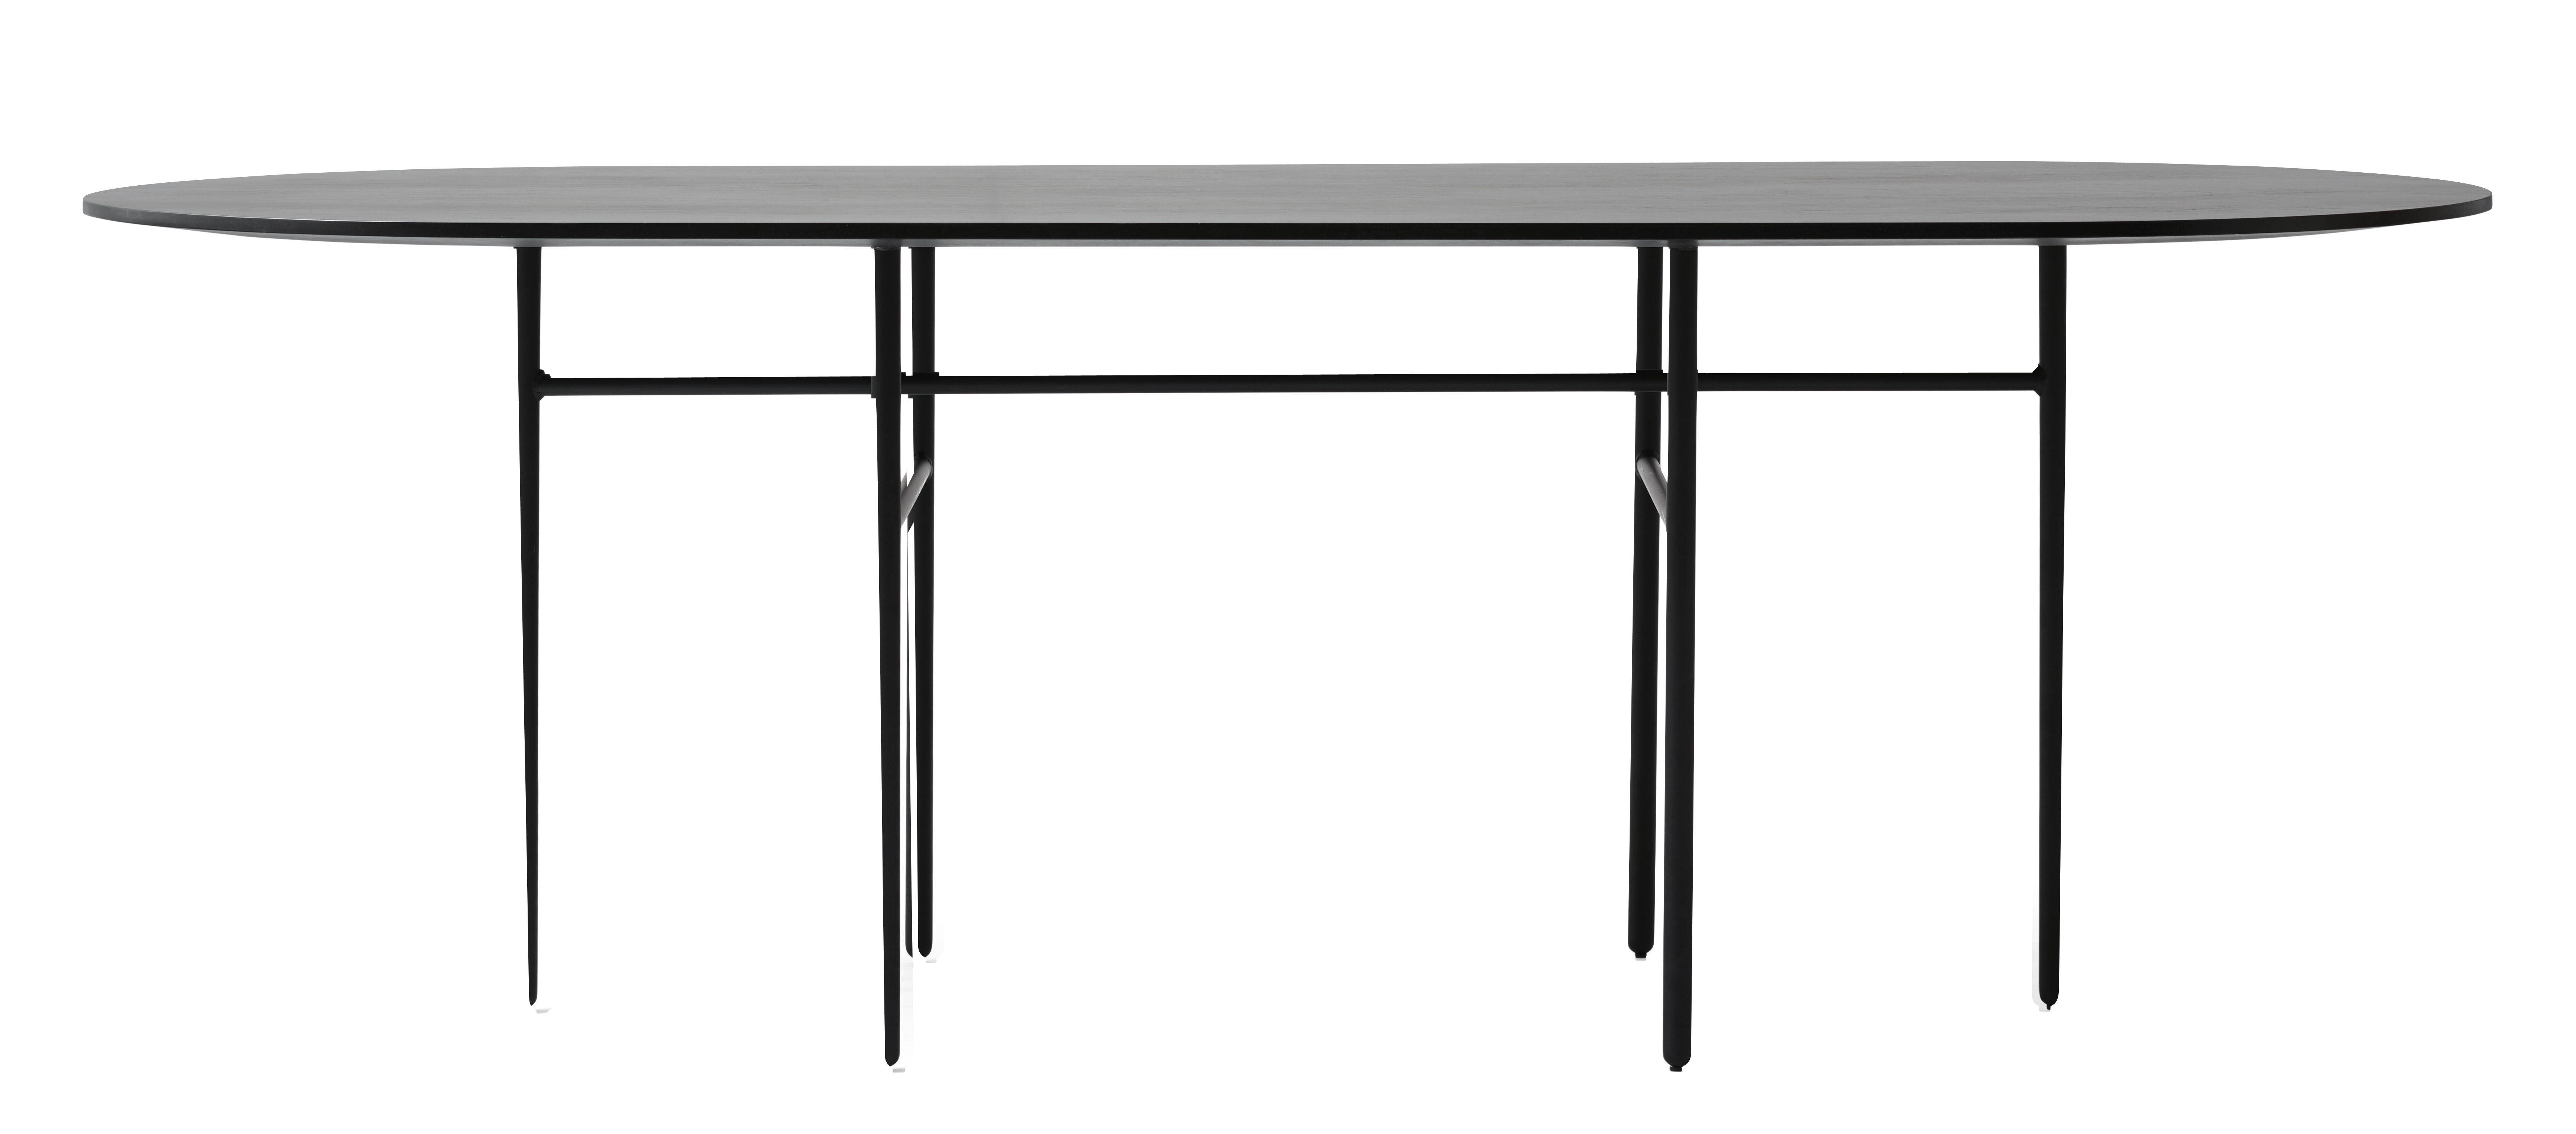 Furniture - Dining Tables - Snaregade Round table - Oval - 210 x 95 cm by Menu - Black - Lacquered steel, Oak plywood